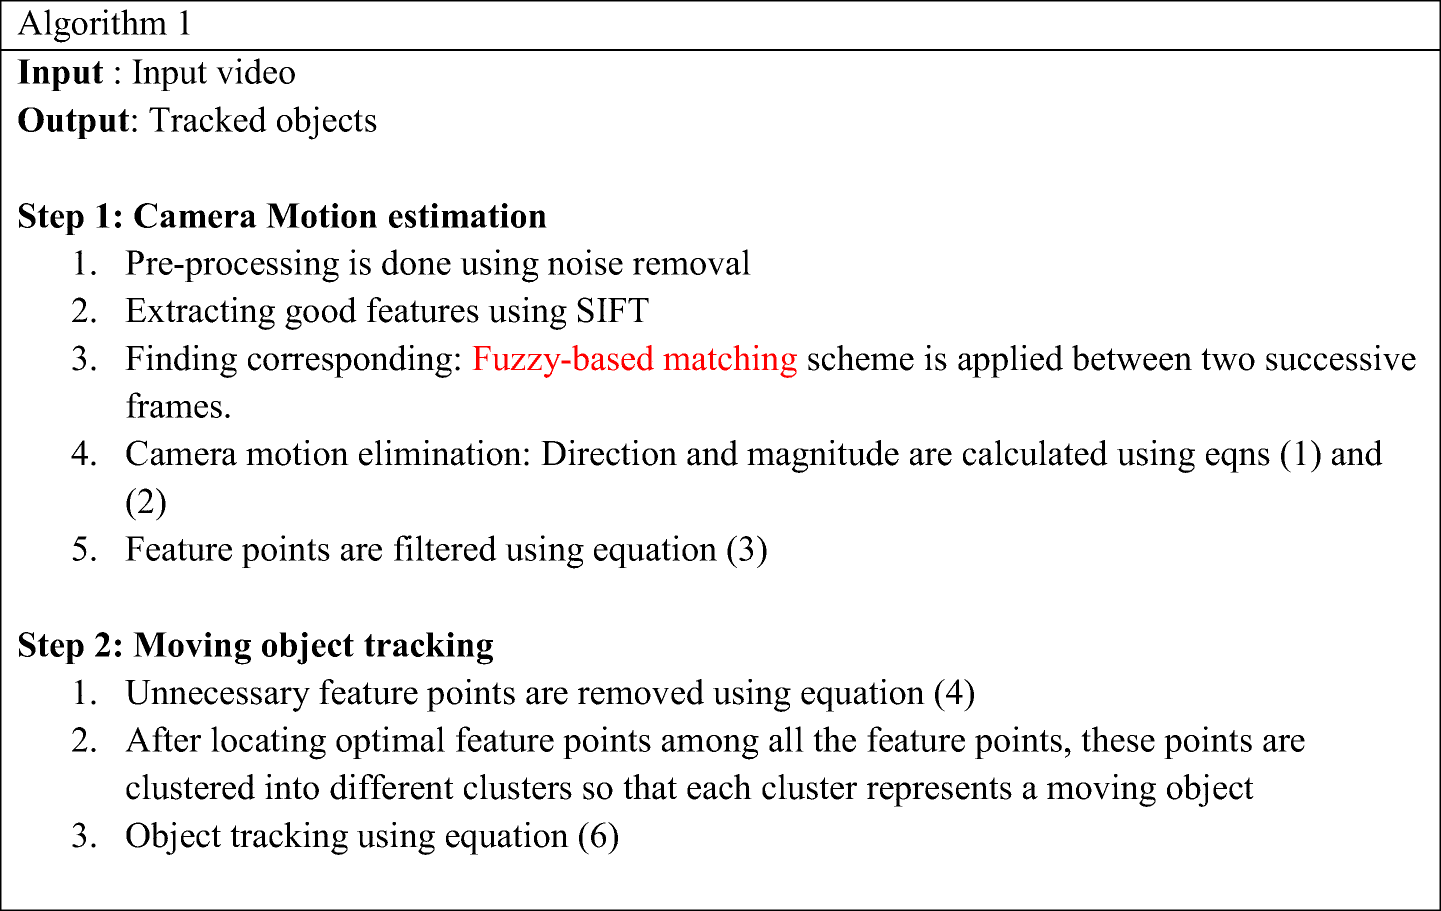 Efficient fuzzy feature matching and optimal feature points for